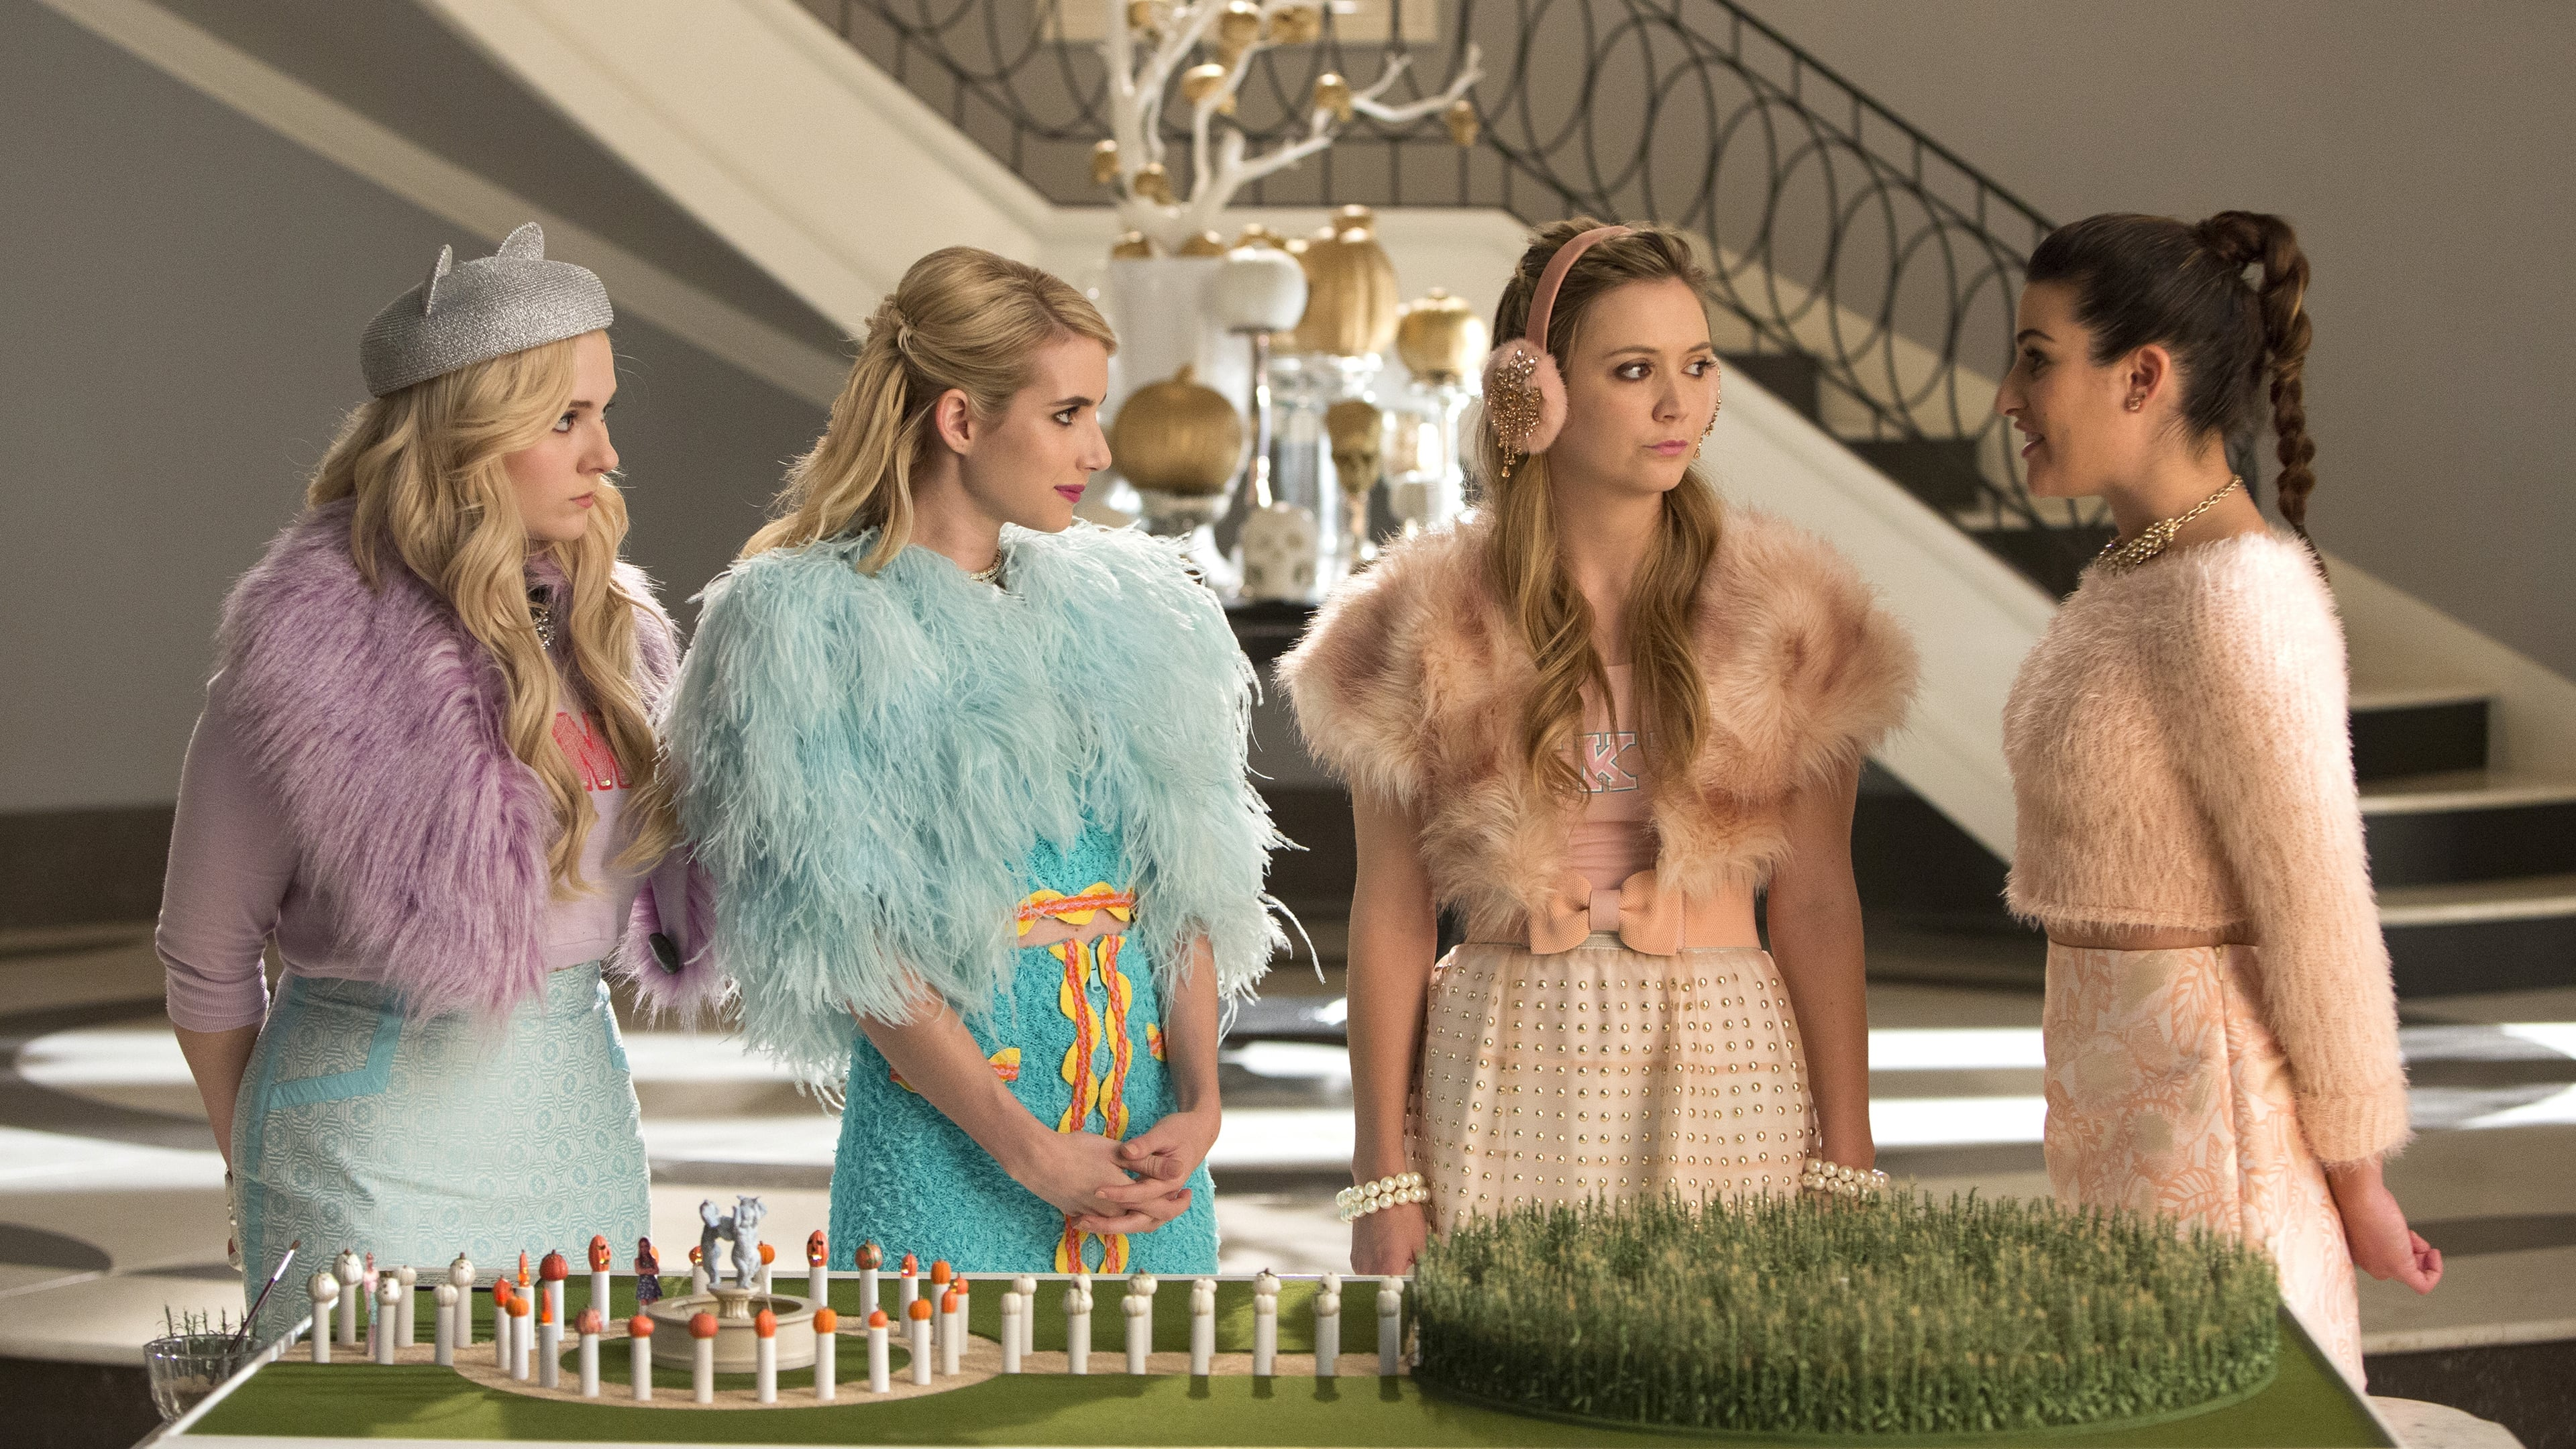 watch scream queens 1x5 online for free rarbg